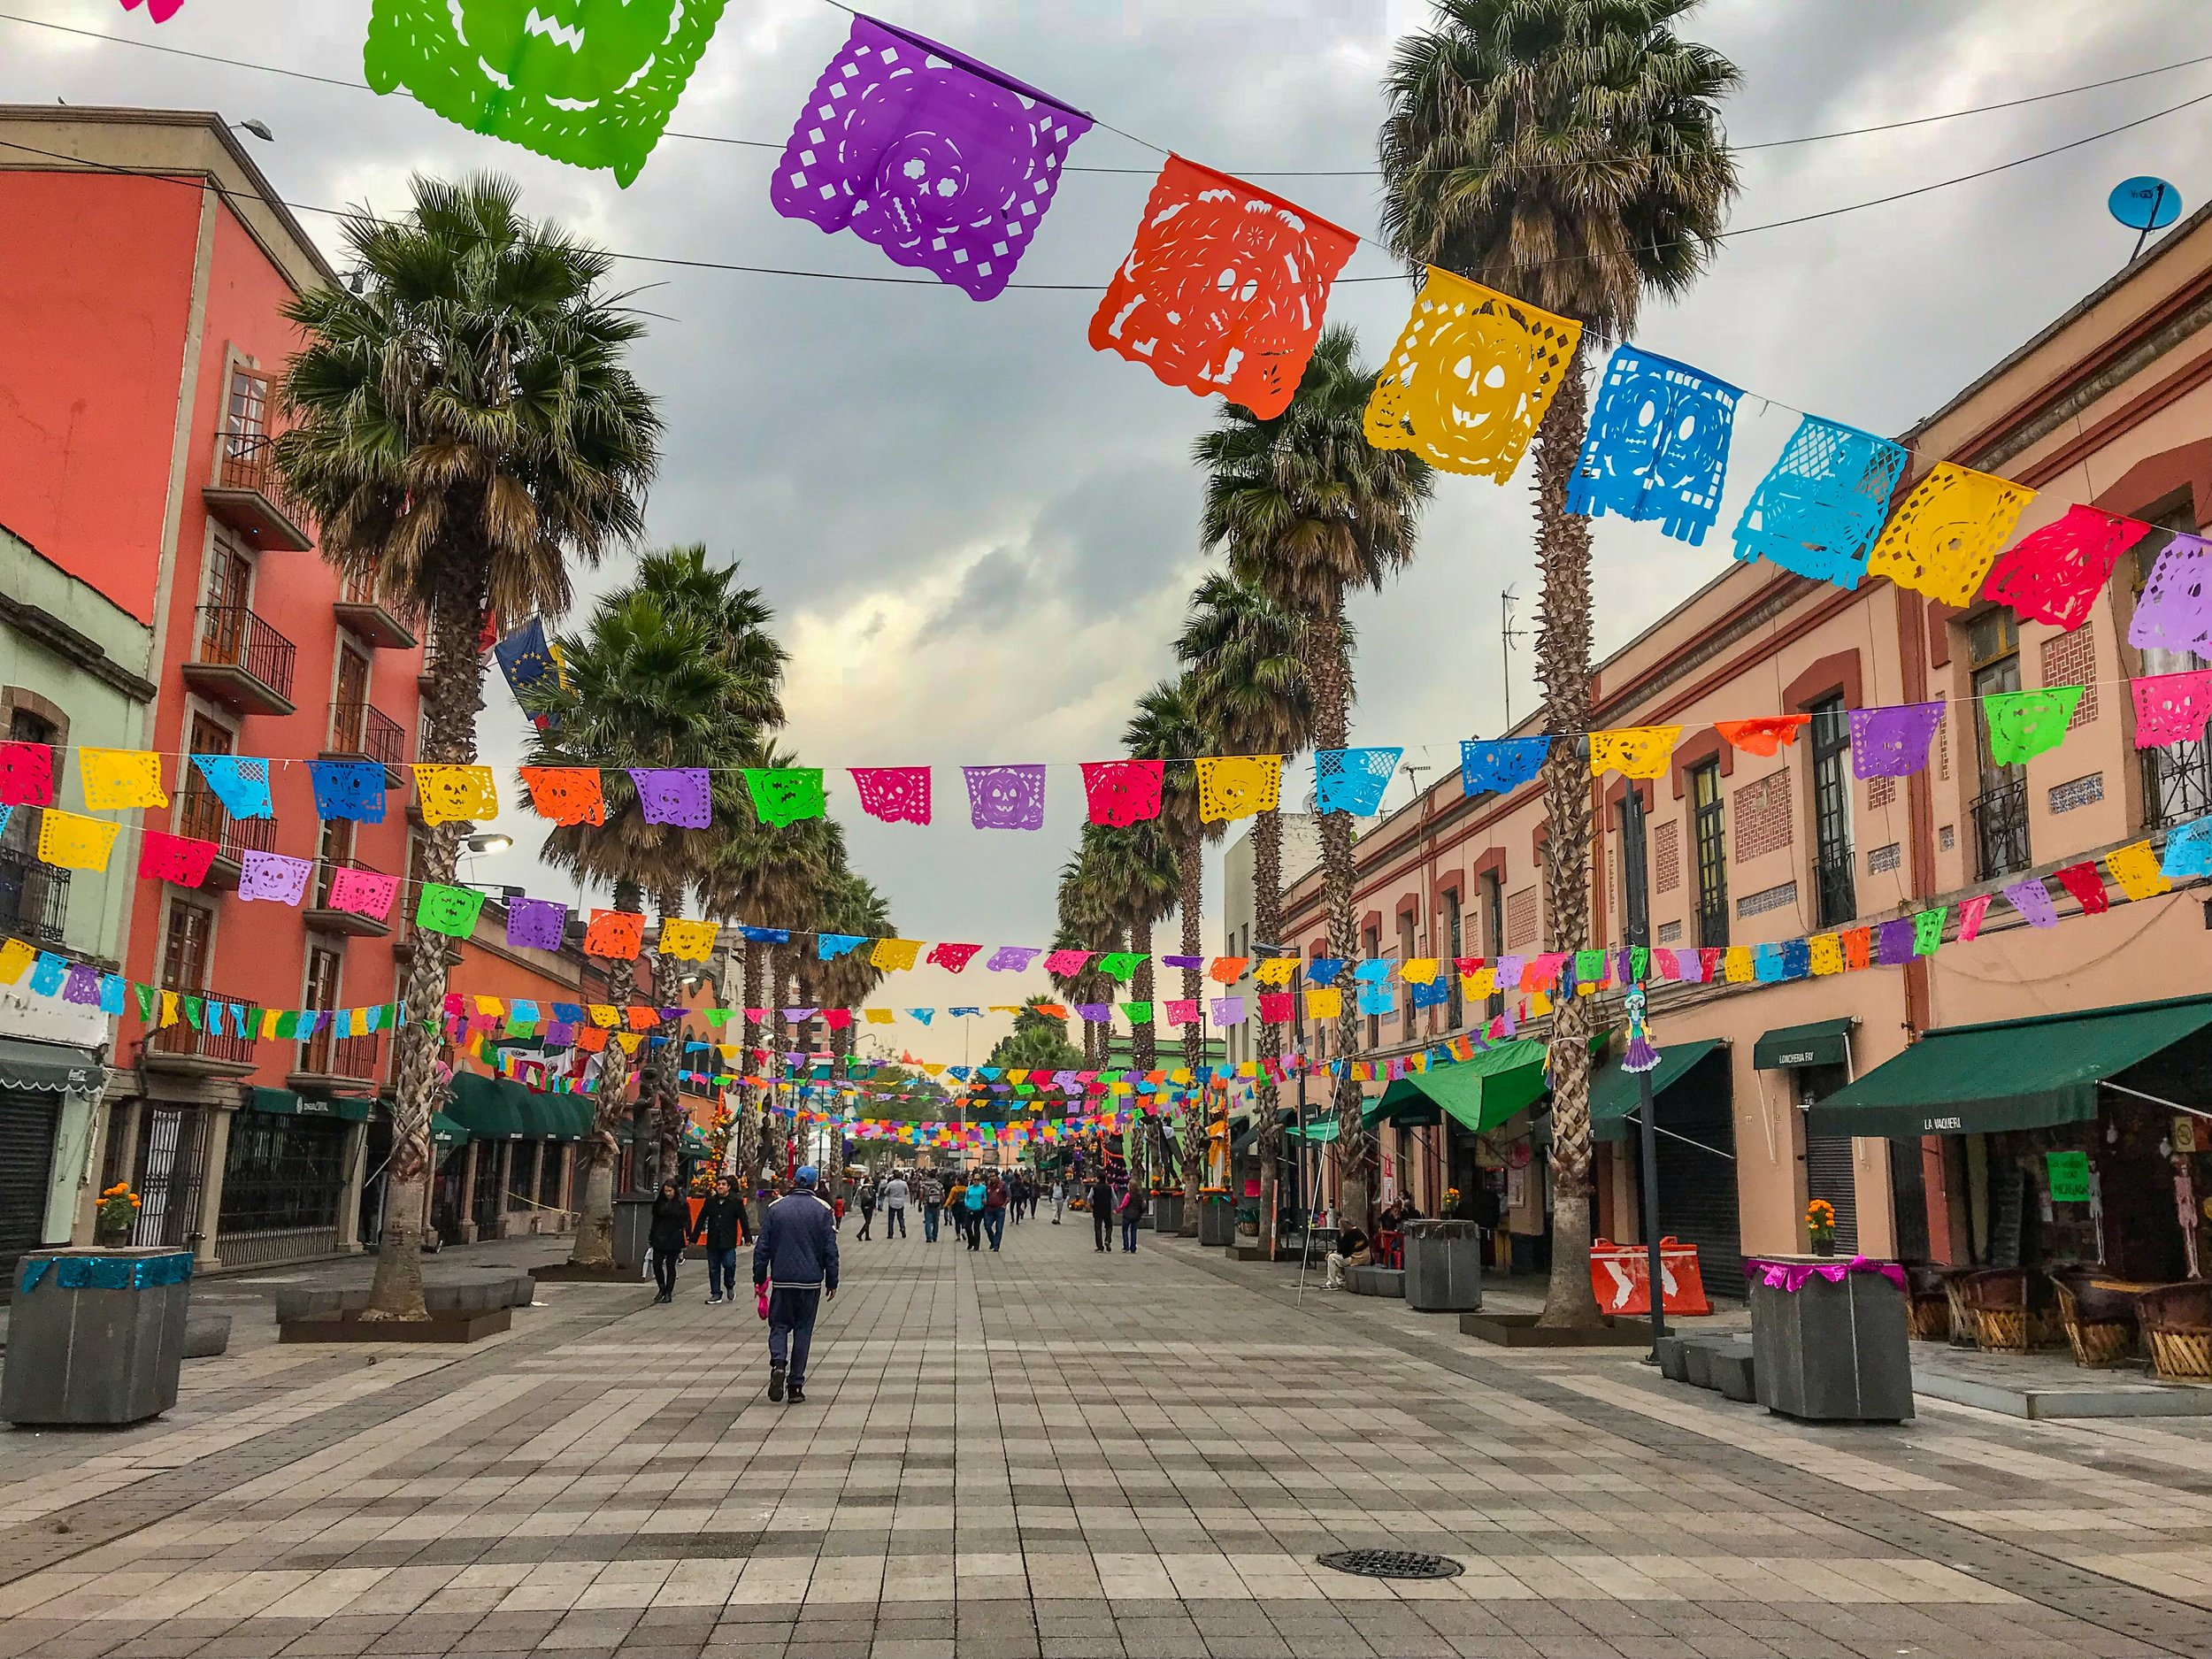 Stroll through brightly decorated streets